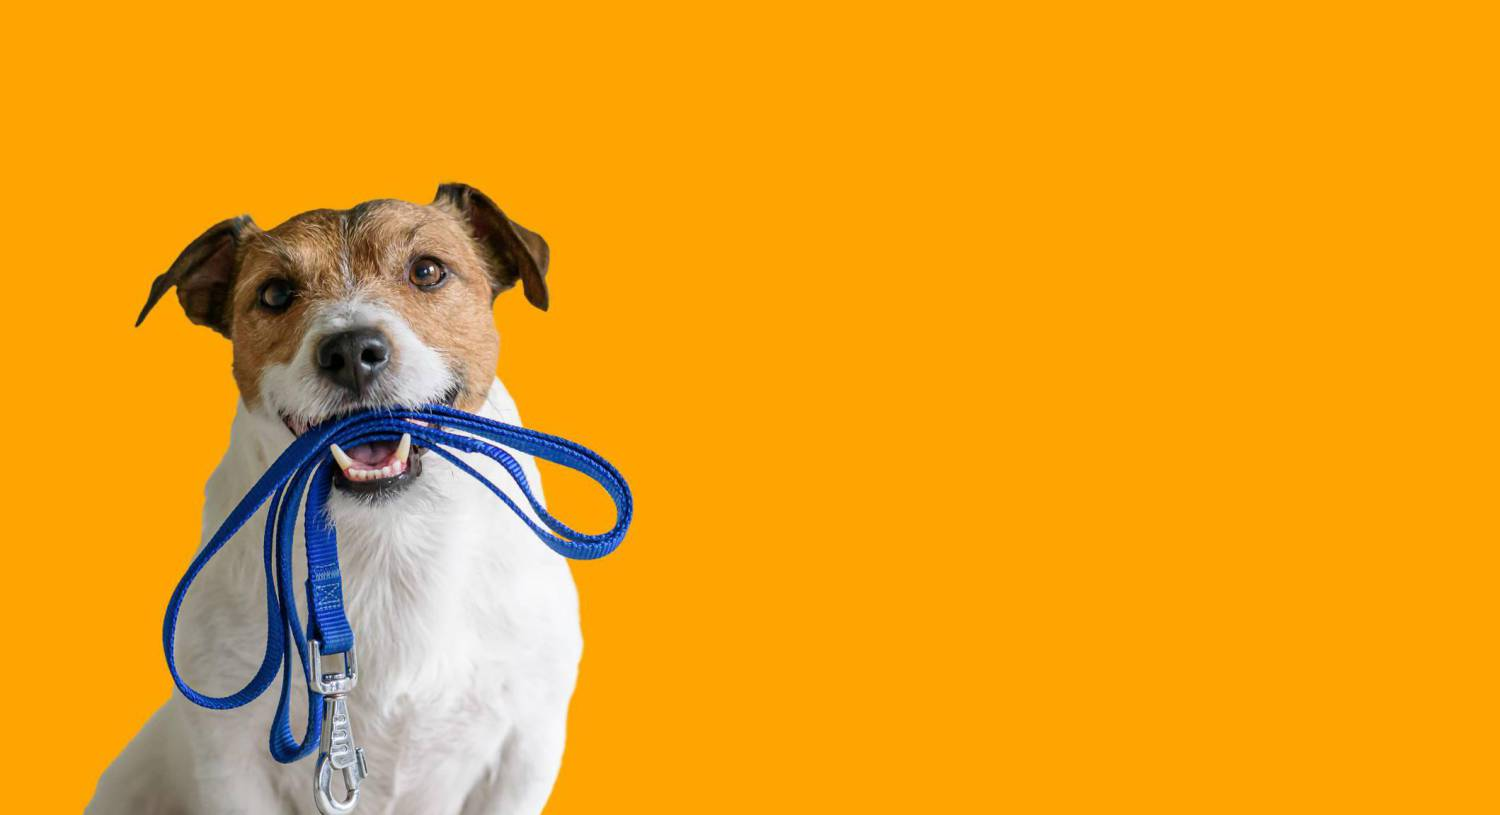 Doggie daycare: Looking after your pooch during pandemic